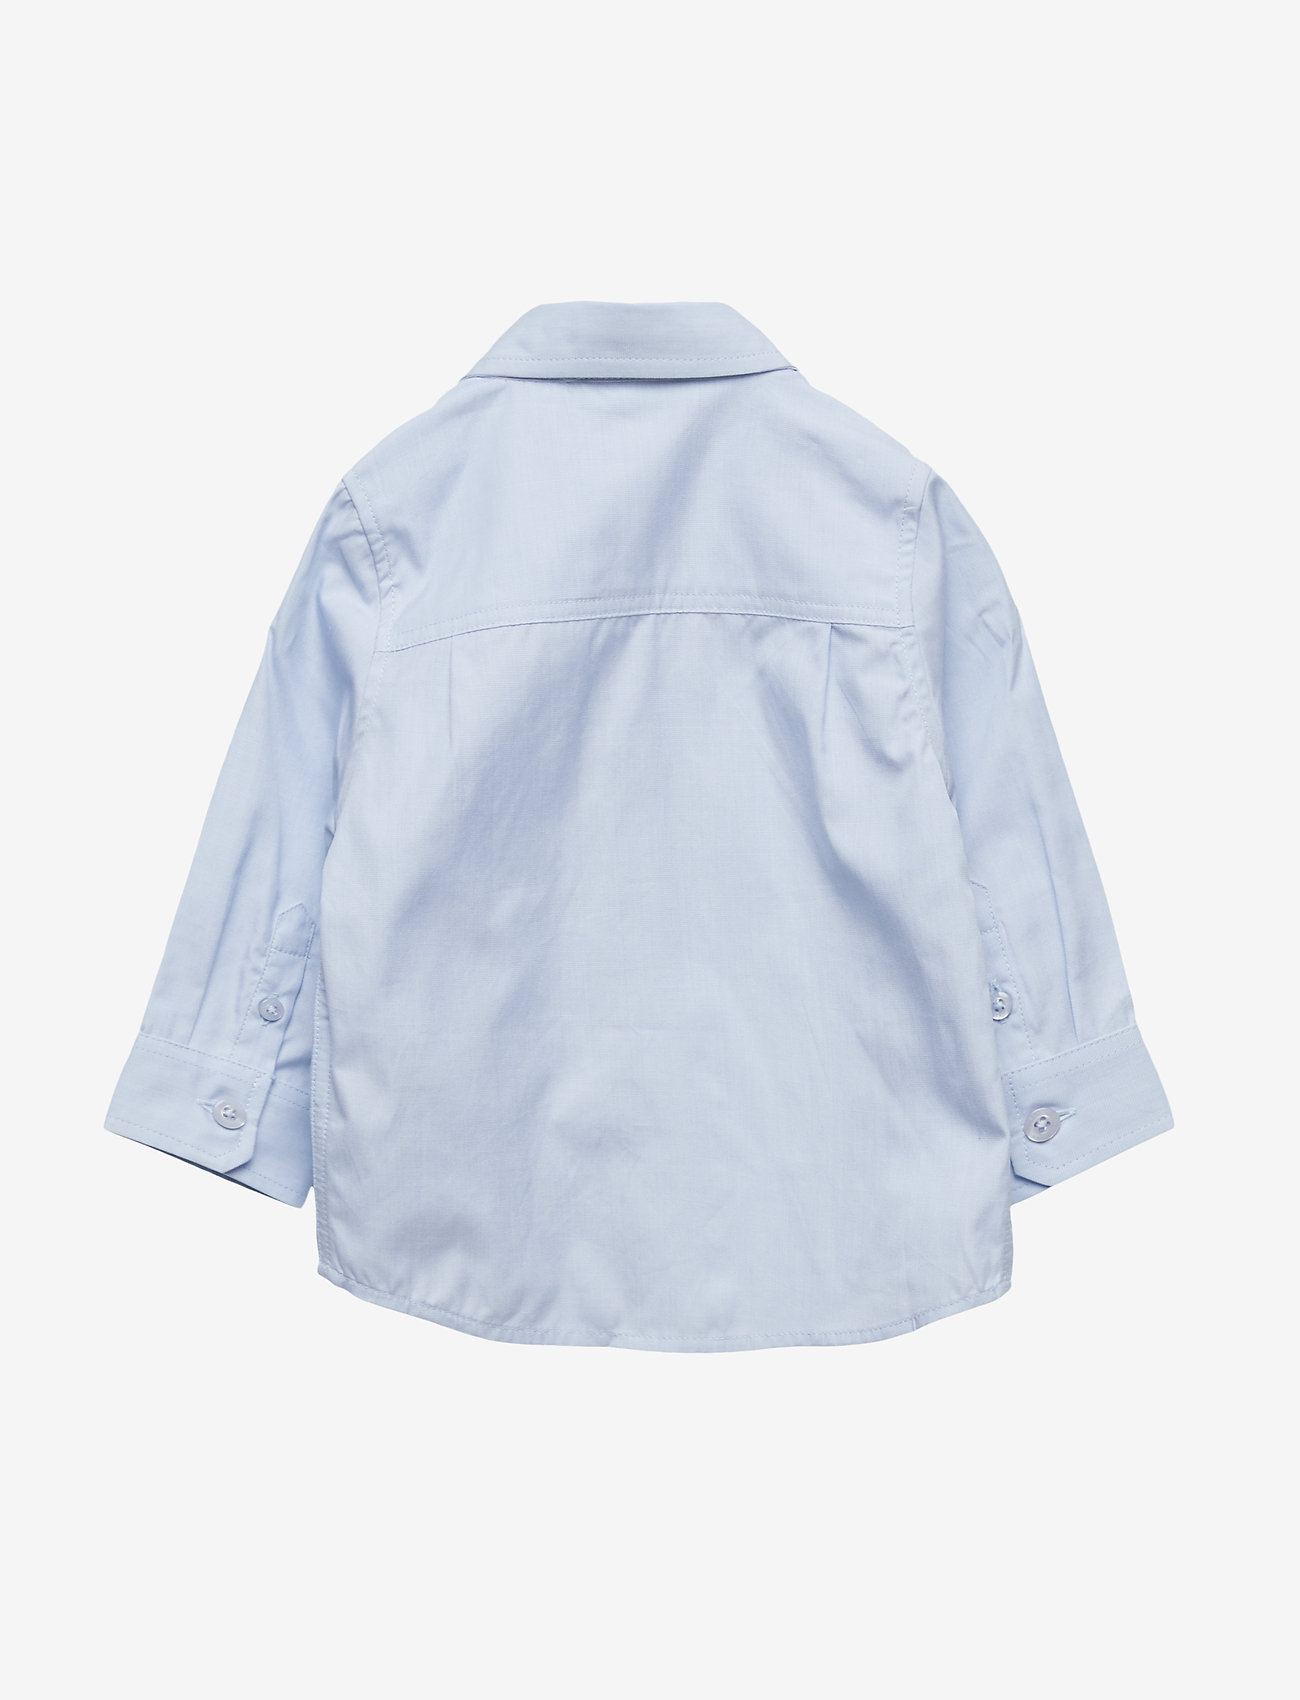 BOSS - SHIRT - overhemden - pale blue - 1